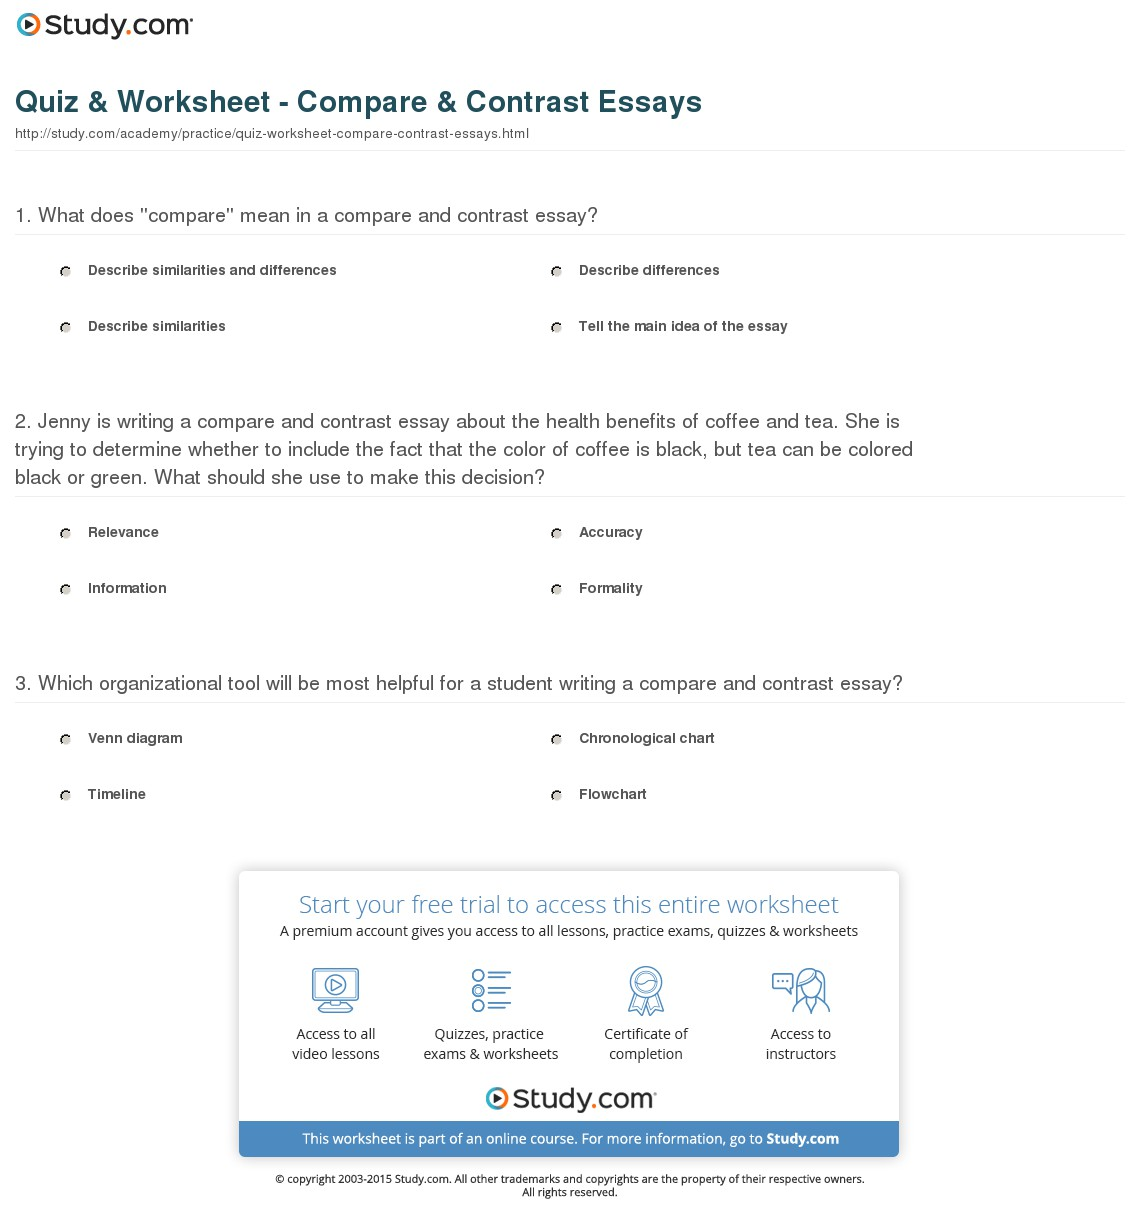 010 Quiz Worksheet Compare Contrast Essays Essay Example Topics For Amazing And Middle School Fun Full